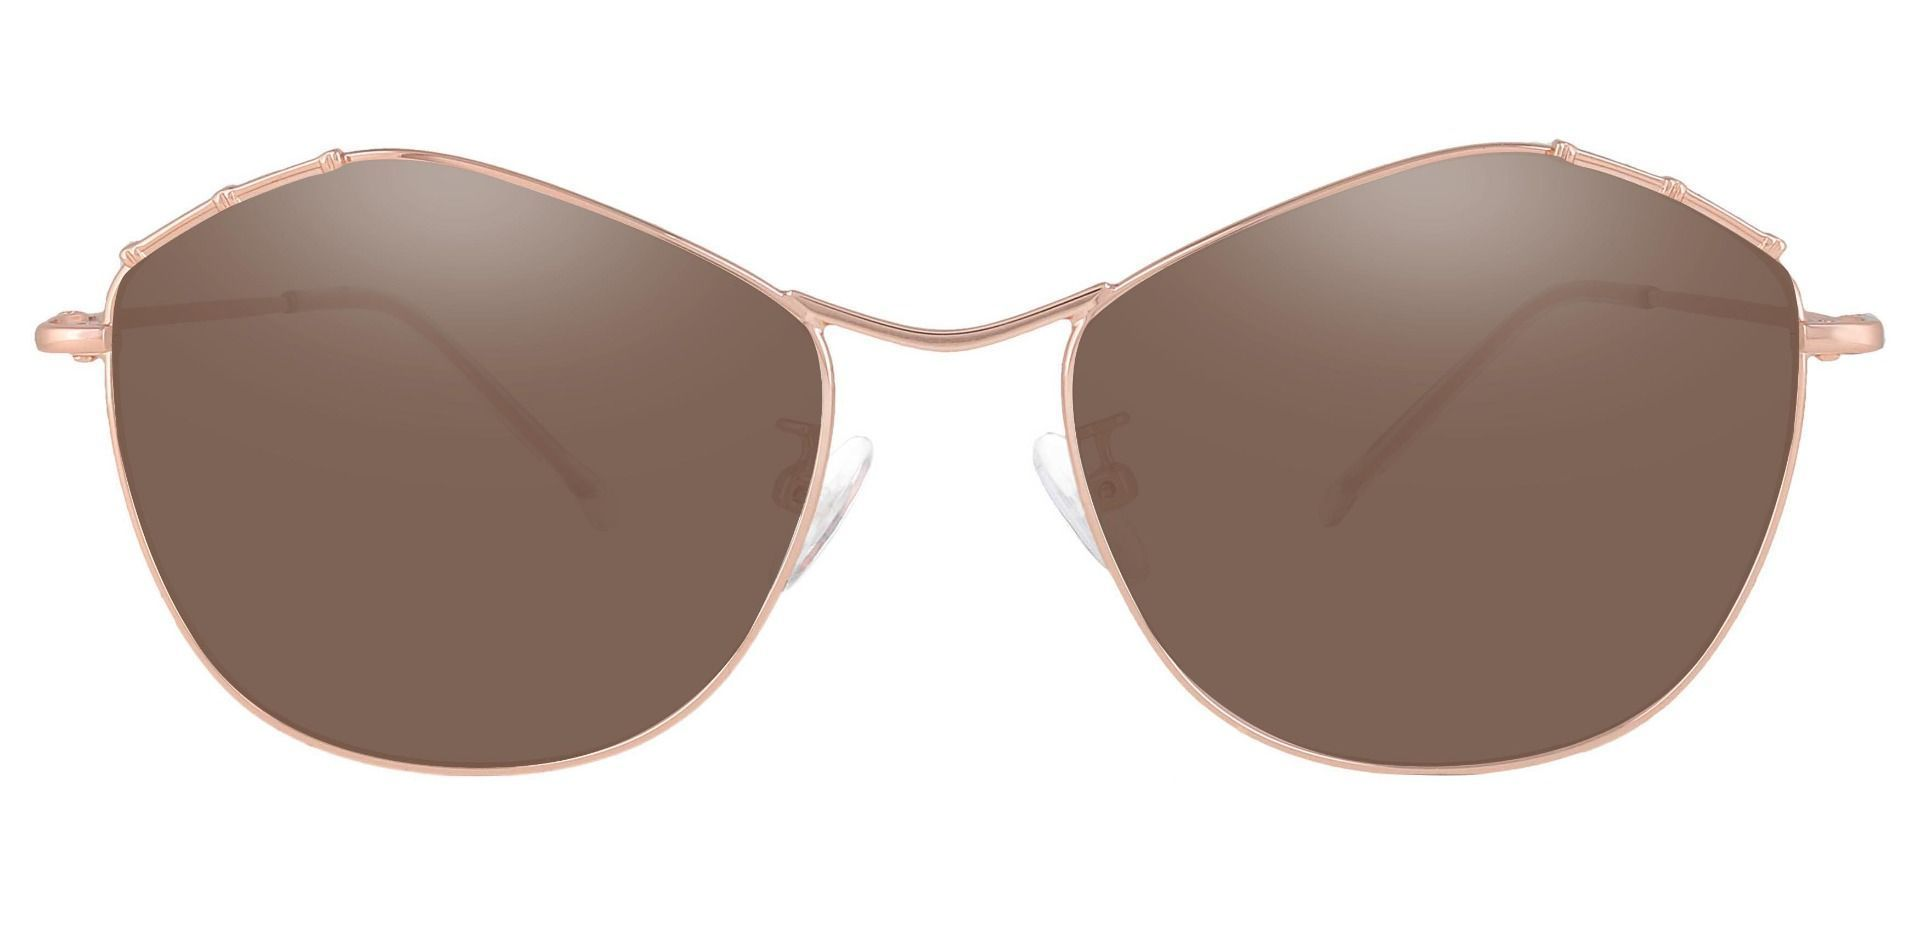 Bamboo Geometric Reading Sunglasses - Rose Gold Frame With Brown Lenses